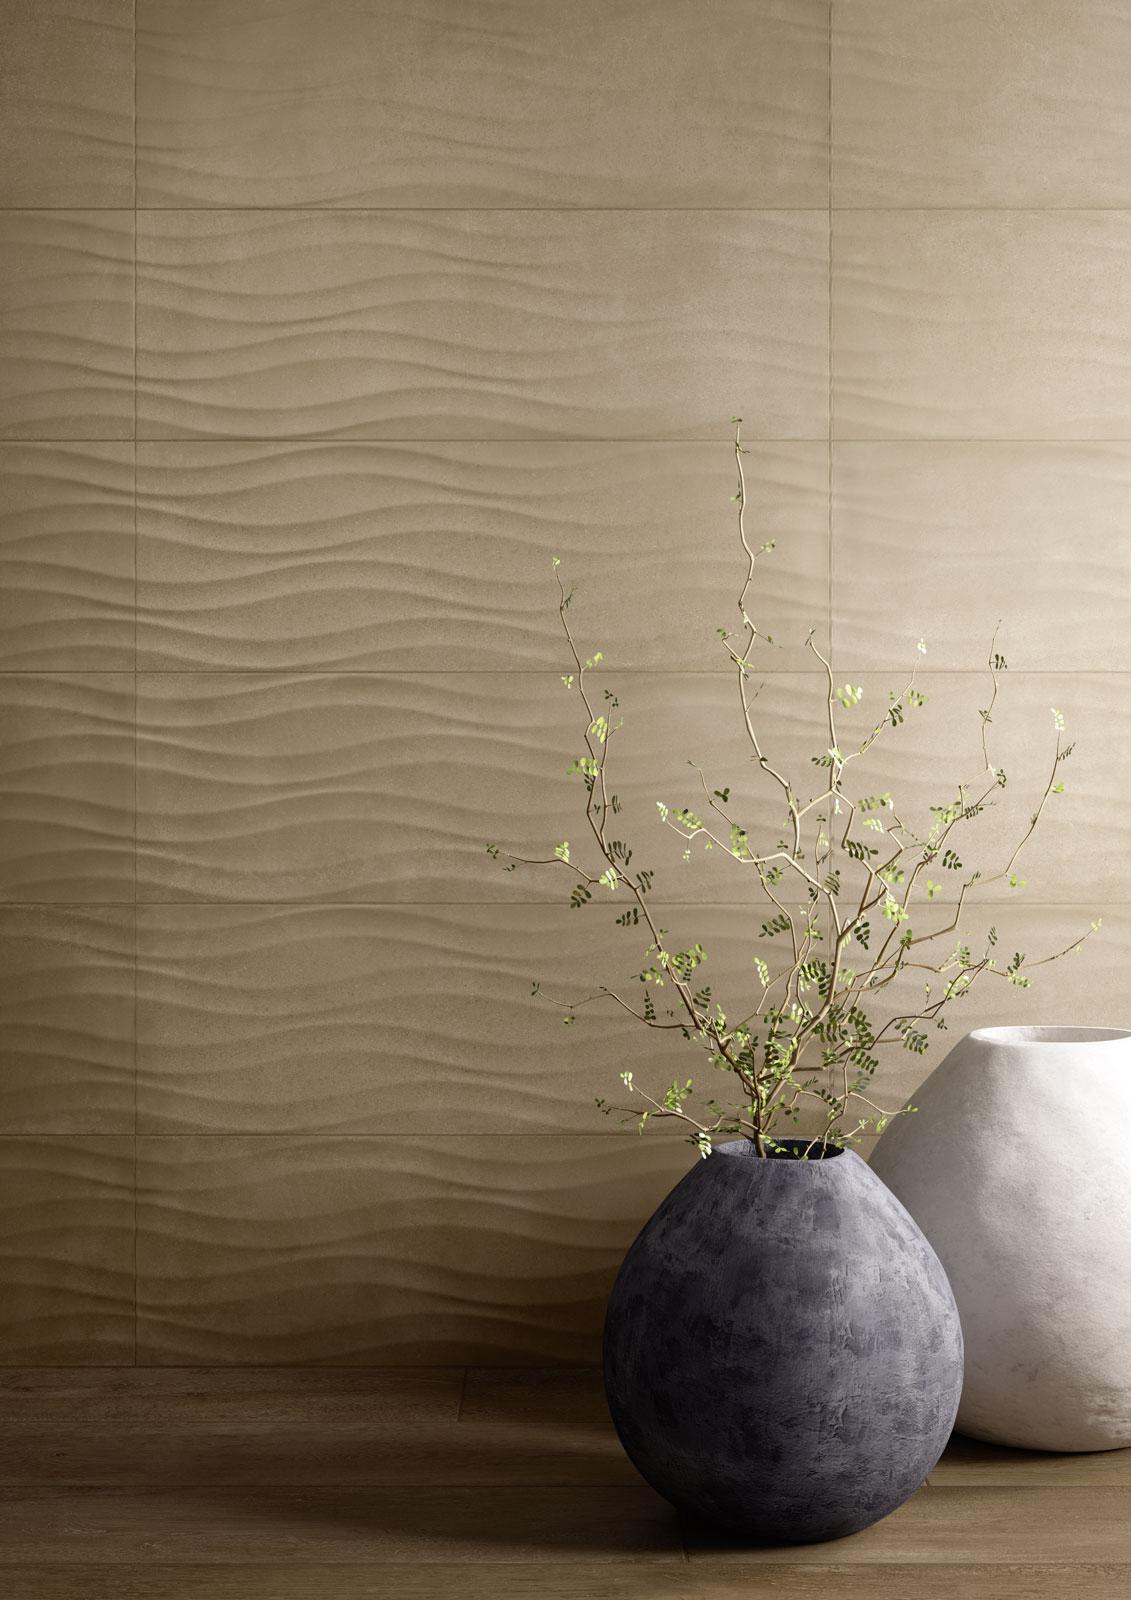 Tiles with wavy texture, a great example of biophilic design.